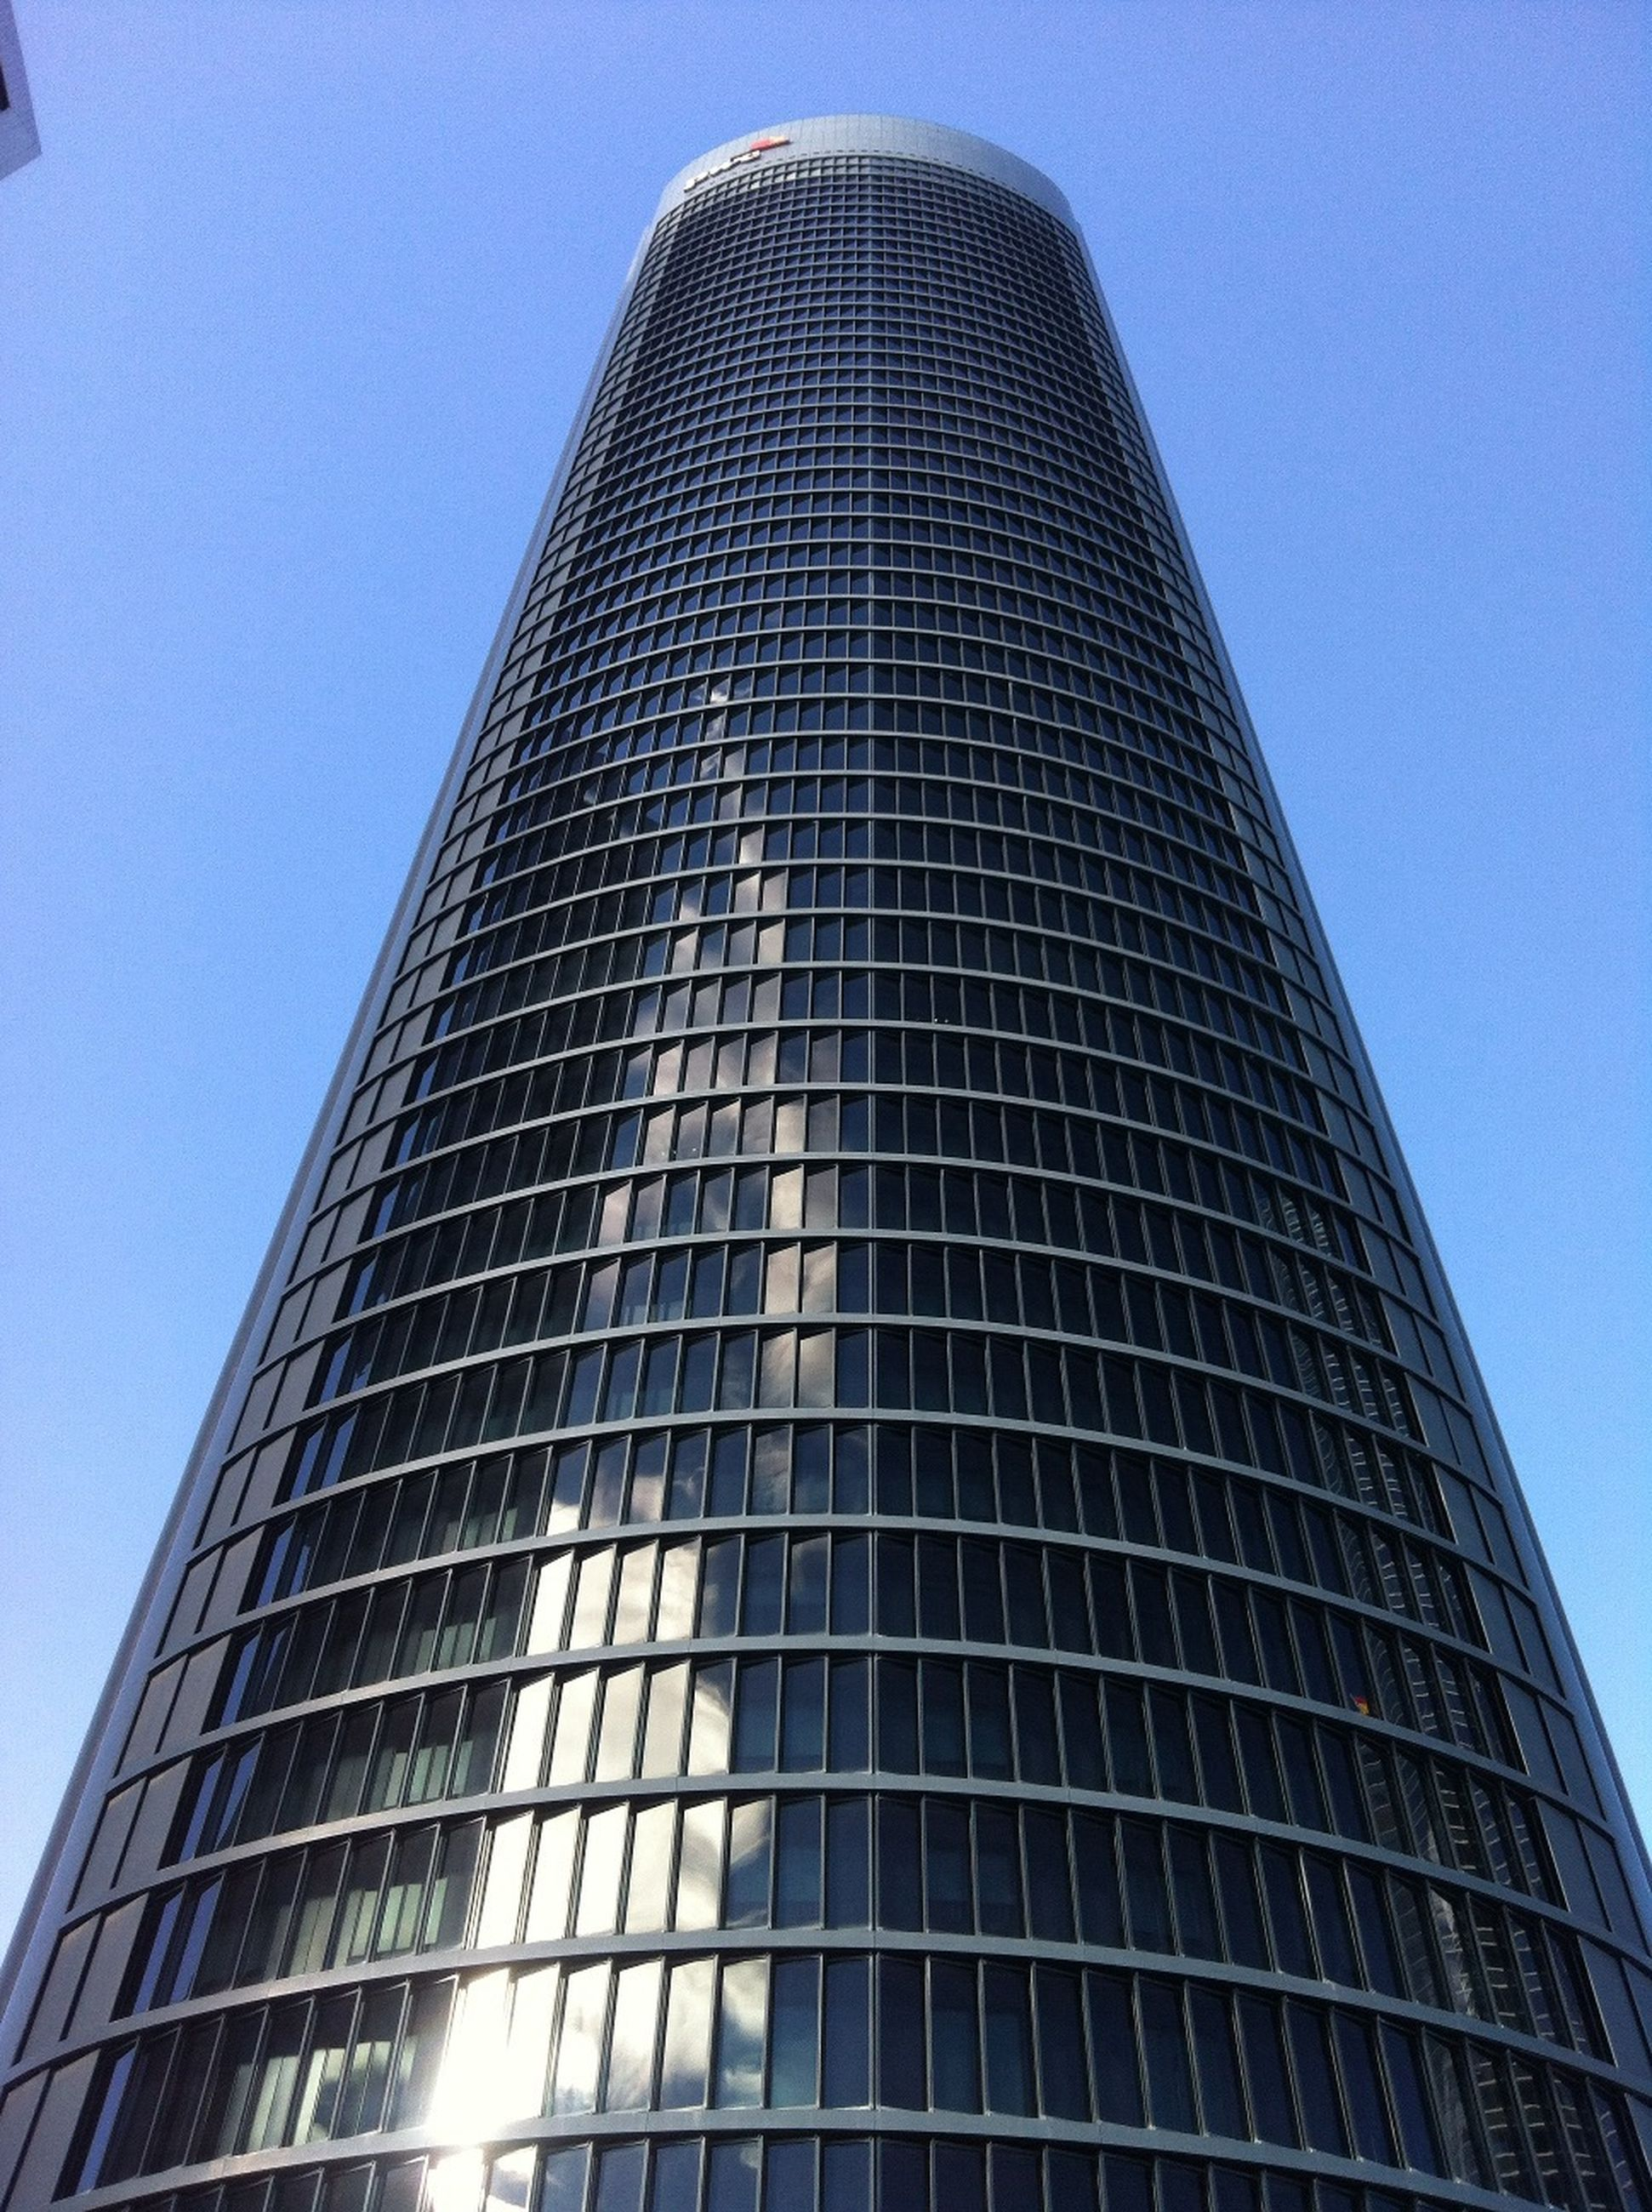 low angle view, architecture, building exterior, modern, built structure, skyscraper, tall - high, office building, tower, city, clear sky, glass - material, building, blue, tall, reflection, day, outdoors, no people, sky